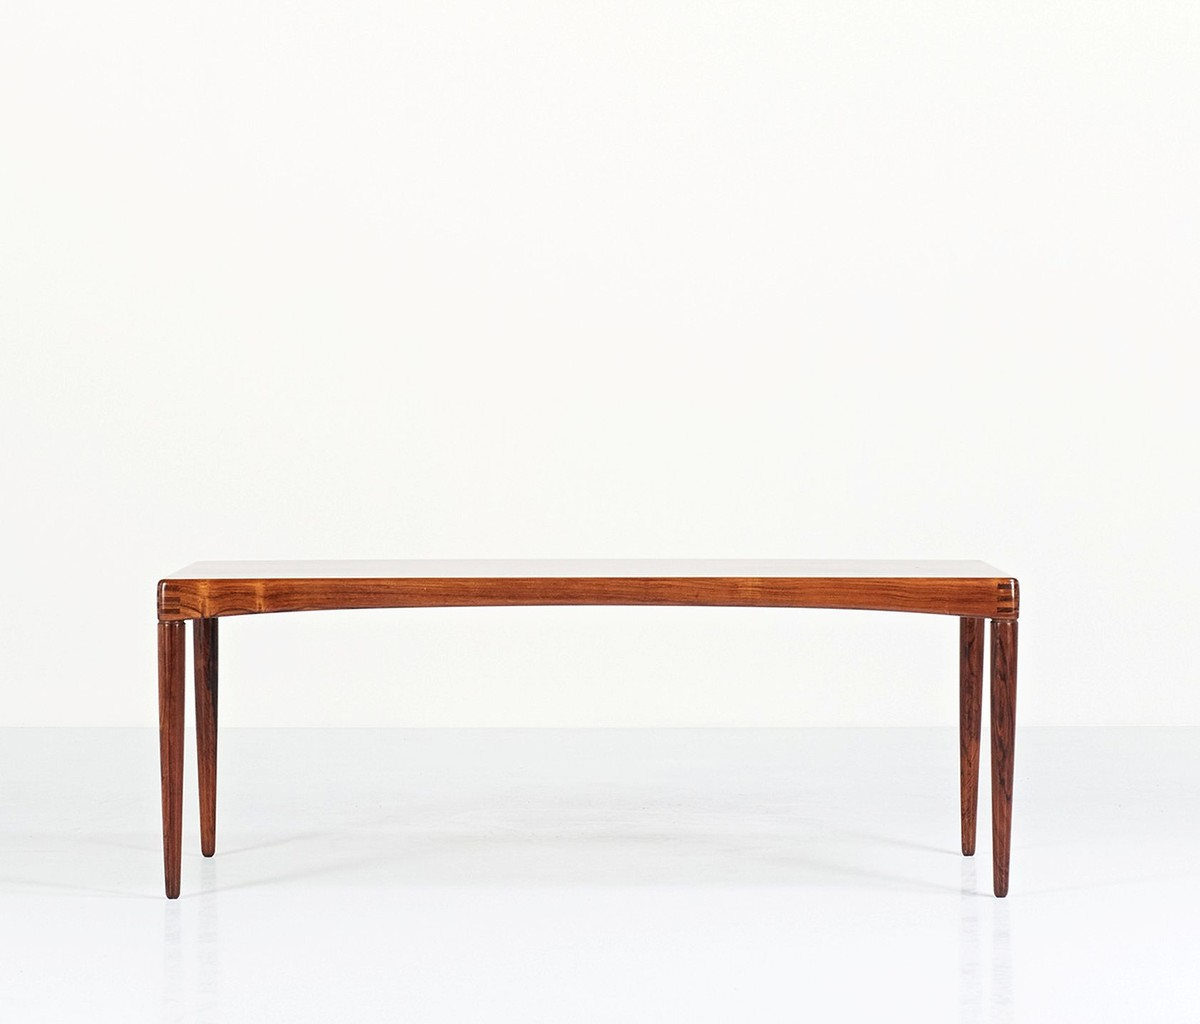 Henry Walter Klein Rosewood Coffee Table For Bramin 1968 Round Table Search Results European Antiques Decorative